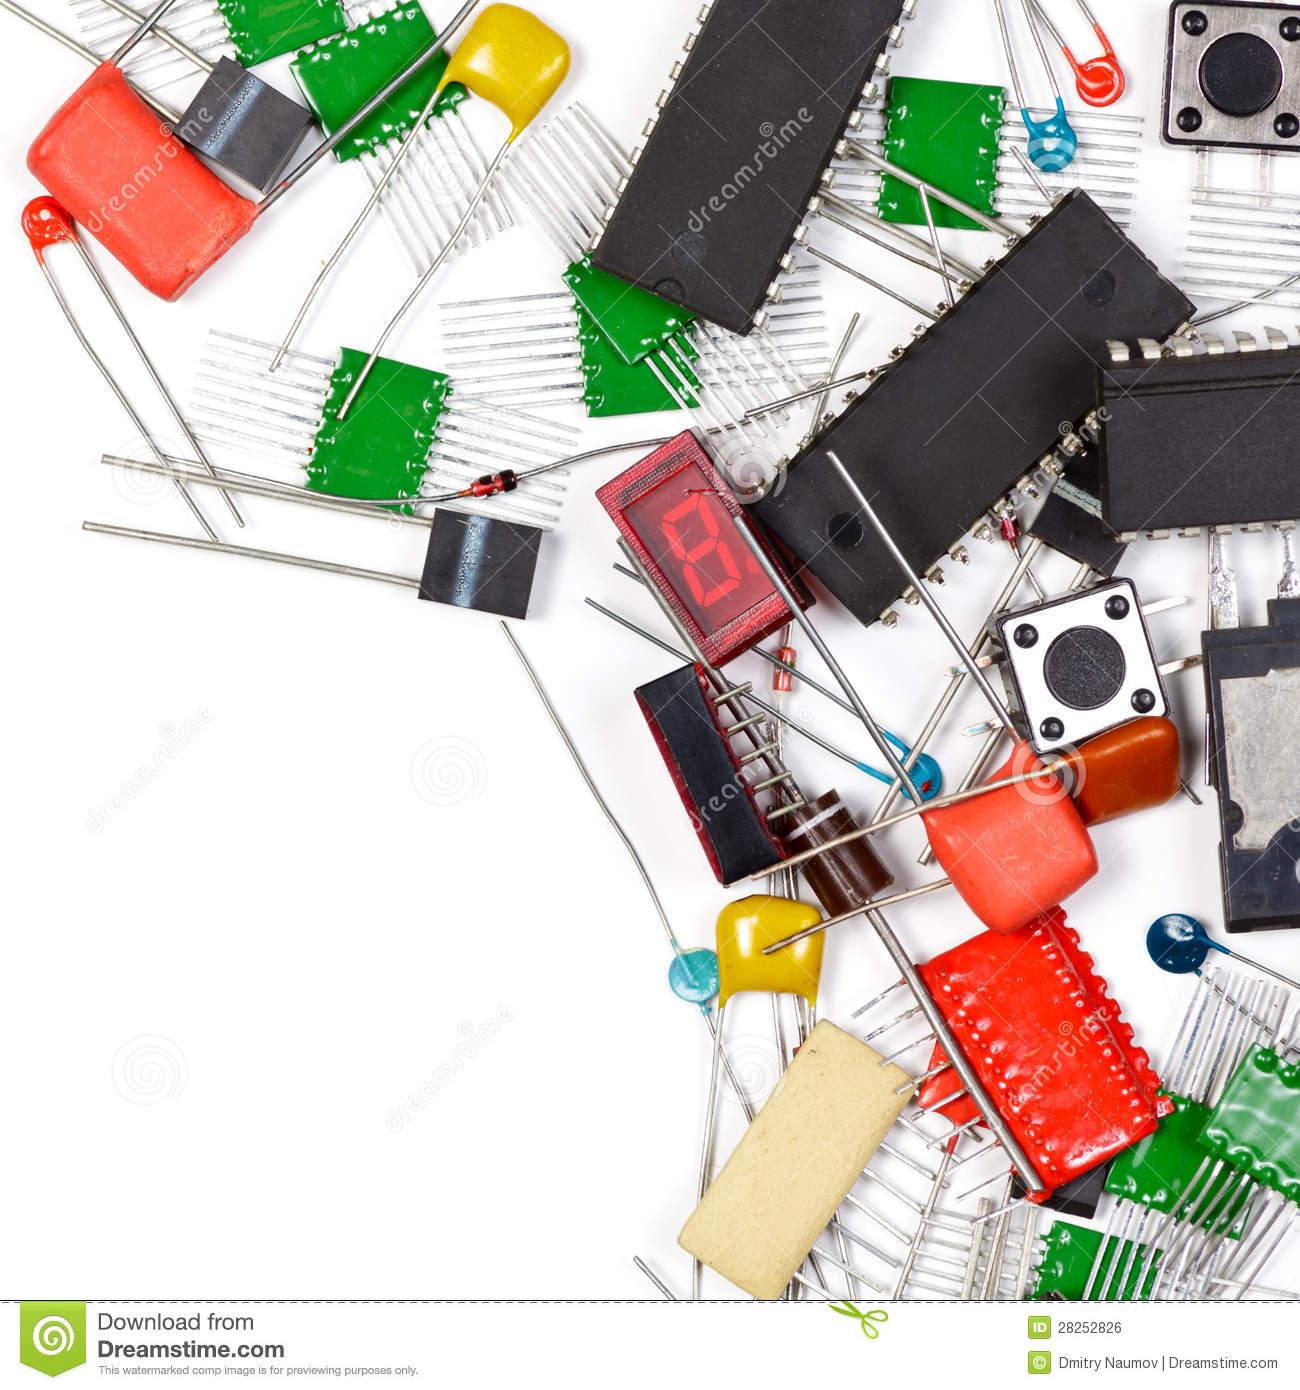 Electronics Components Background Stock Photo - Image of electrical, technology: 28252826